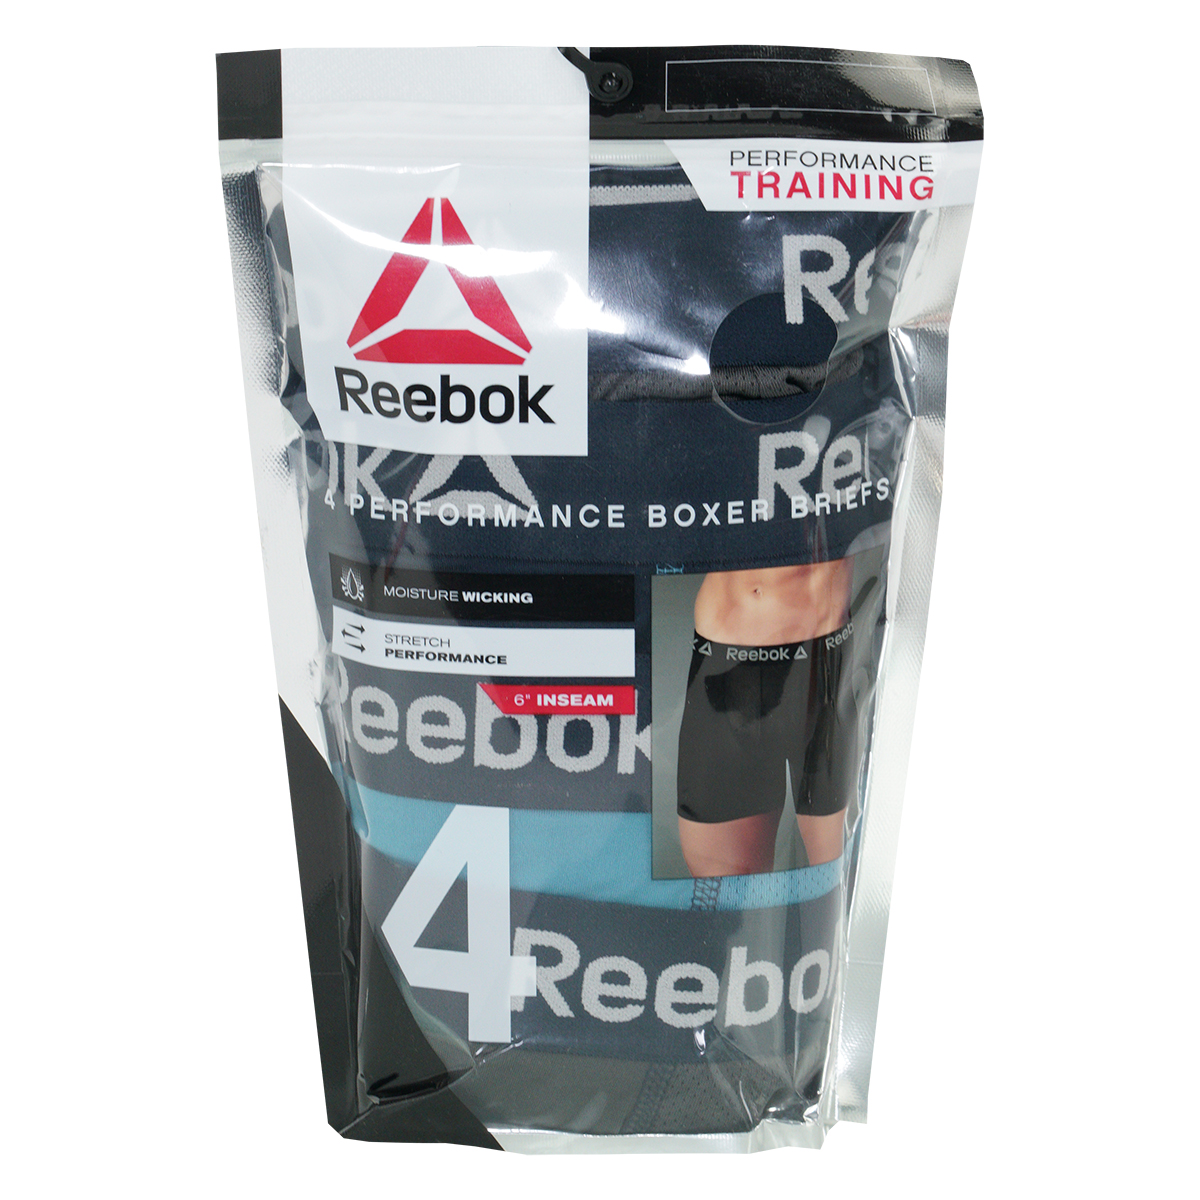 Reebok-Men-039-s-Performance-Boxer-Briefs-4-Pack thumbnail 19